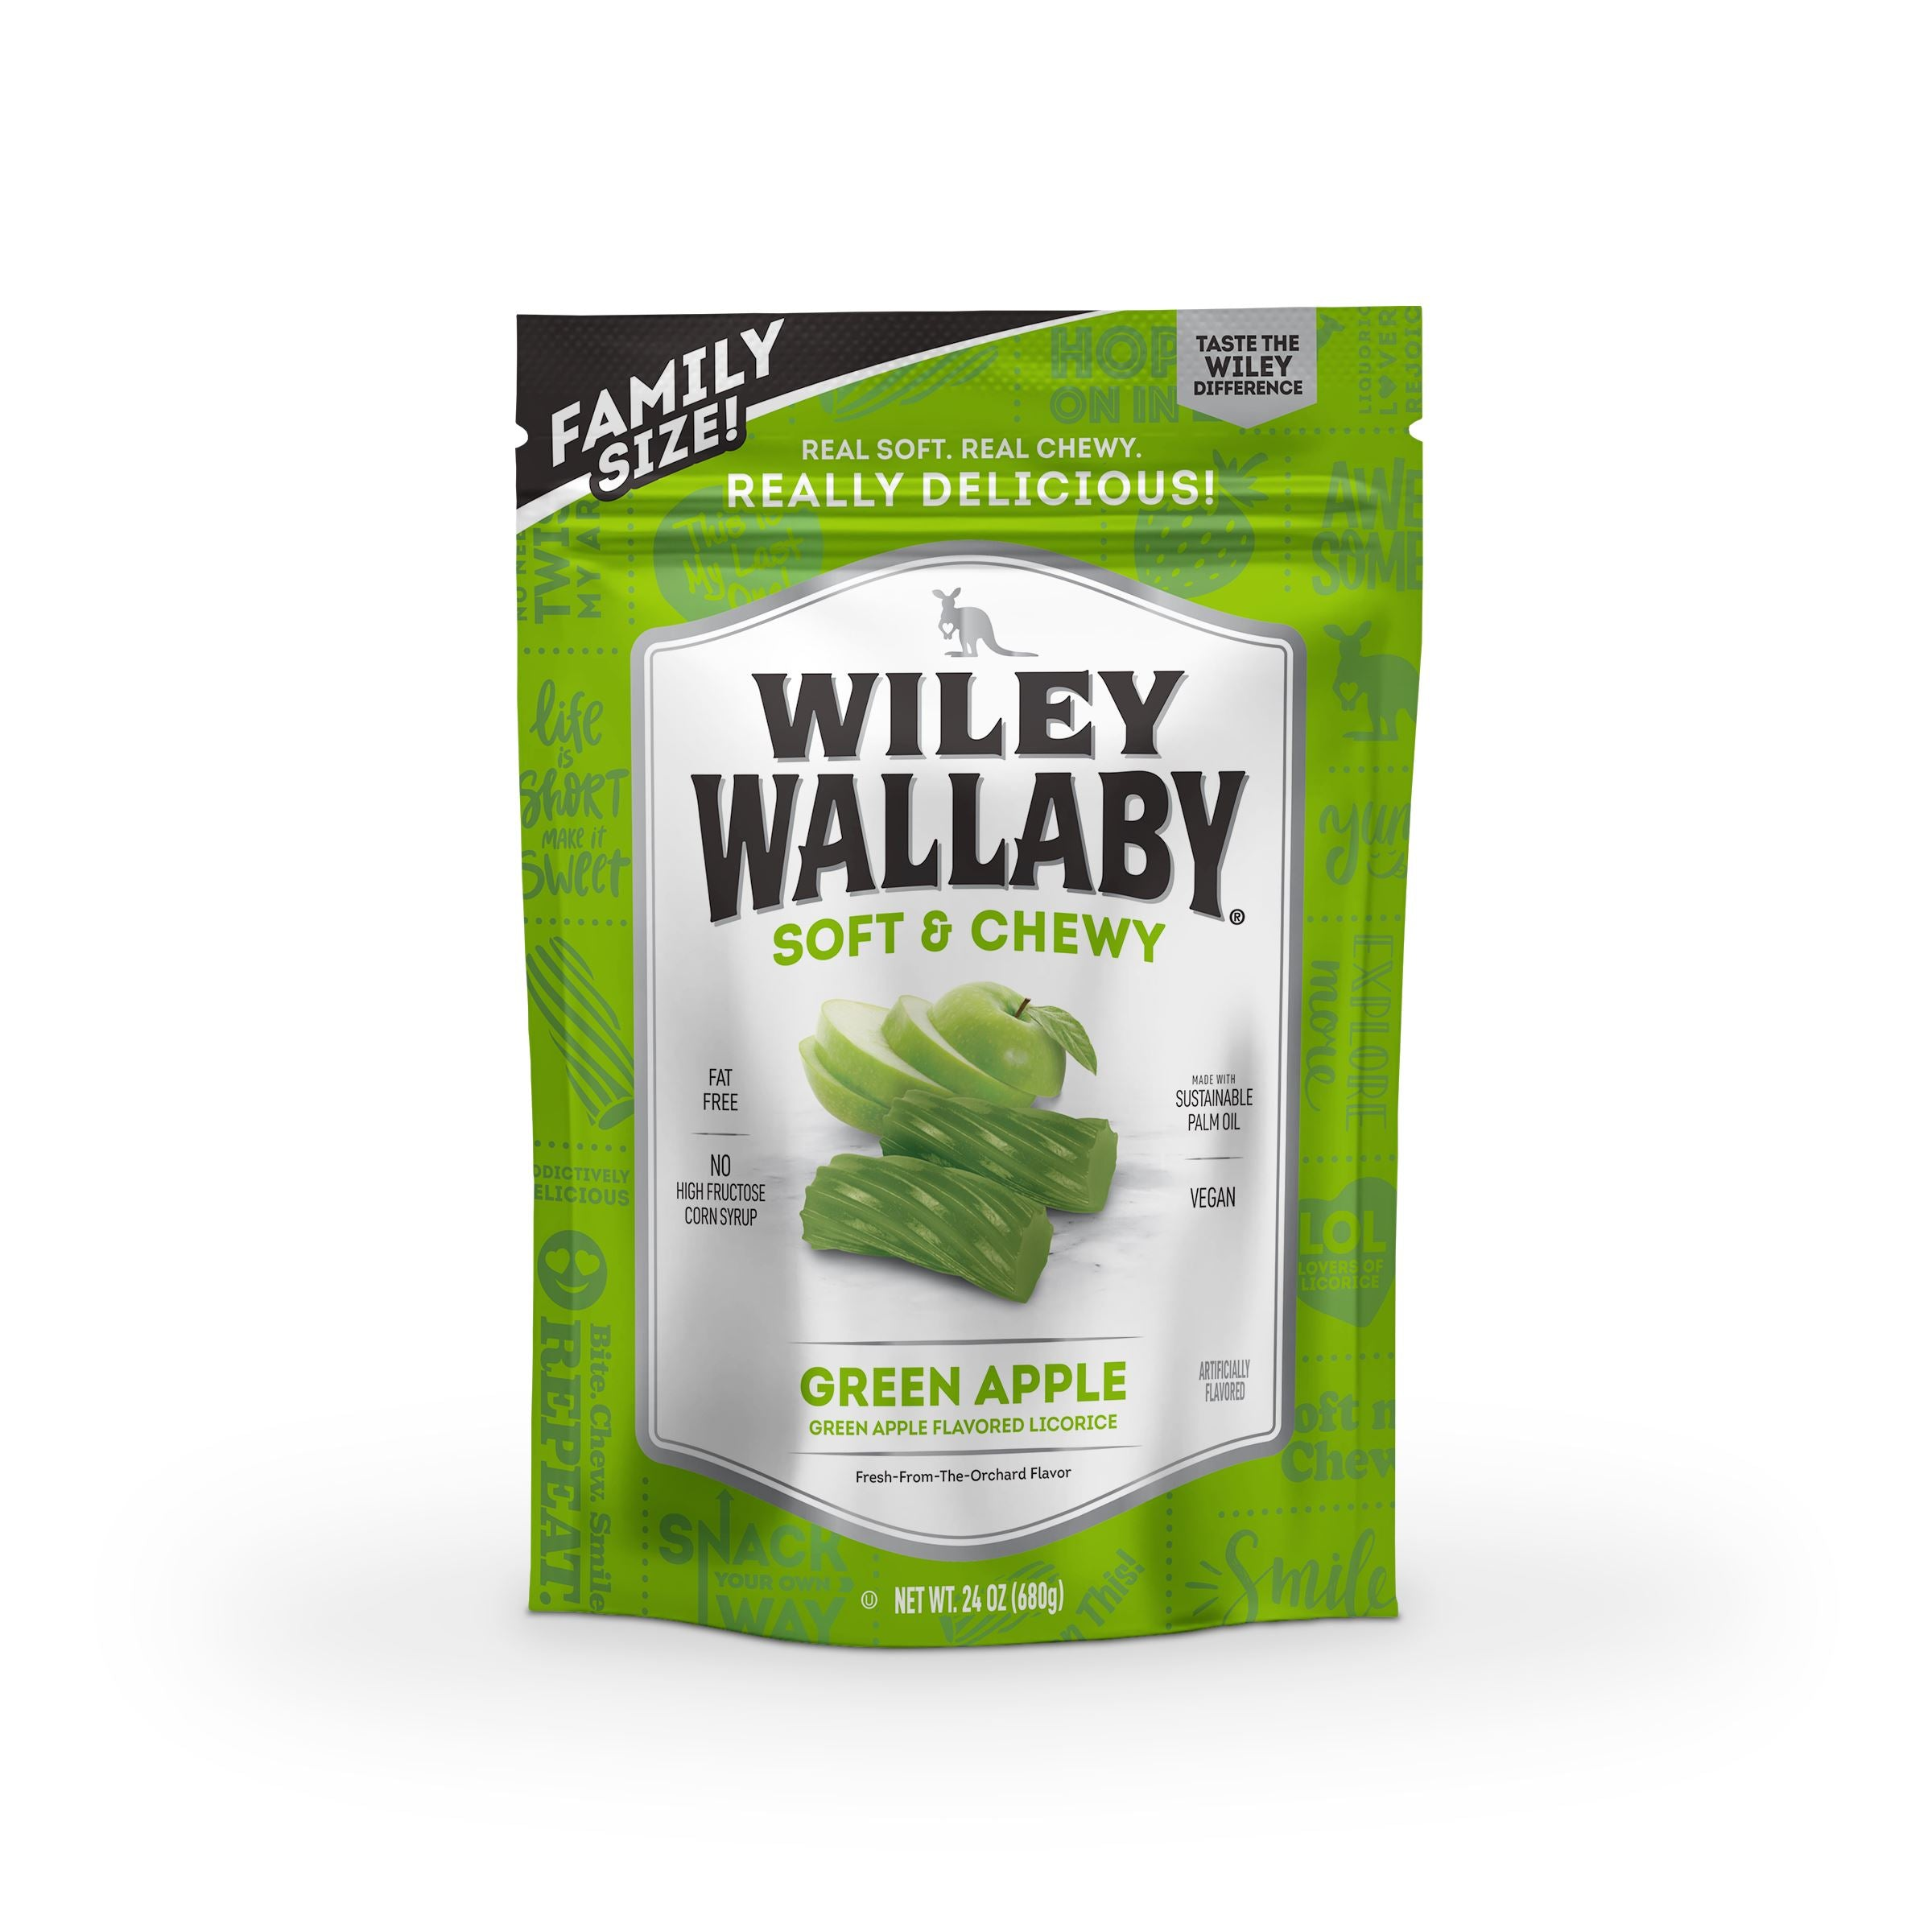 Wiley Wallaby Licorice Wiley Wallaby Green Apple 24 Ounce